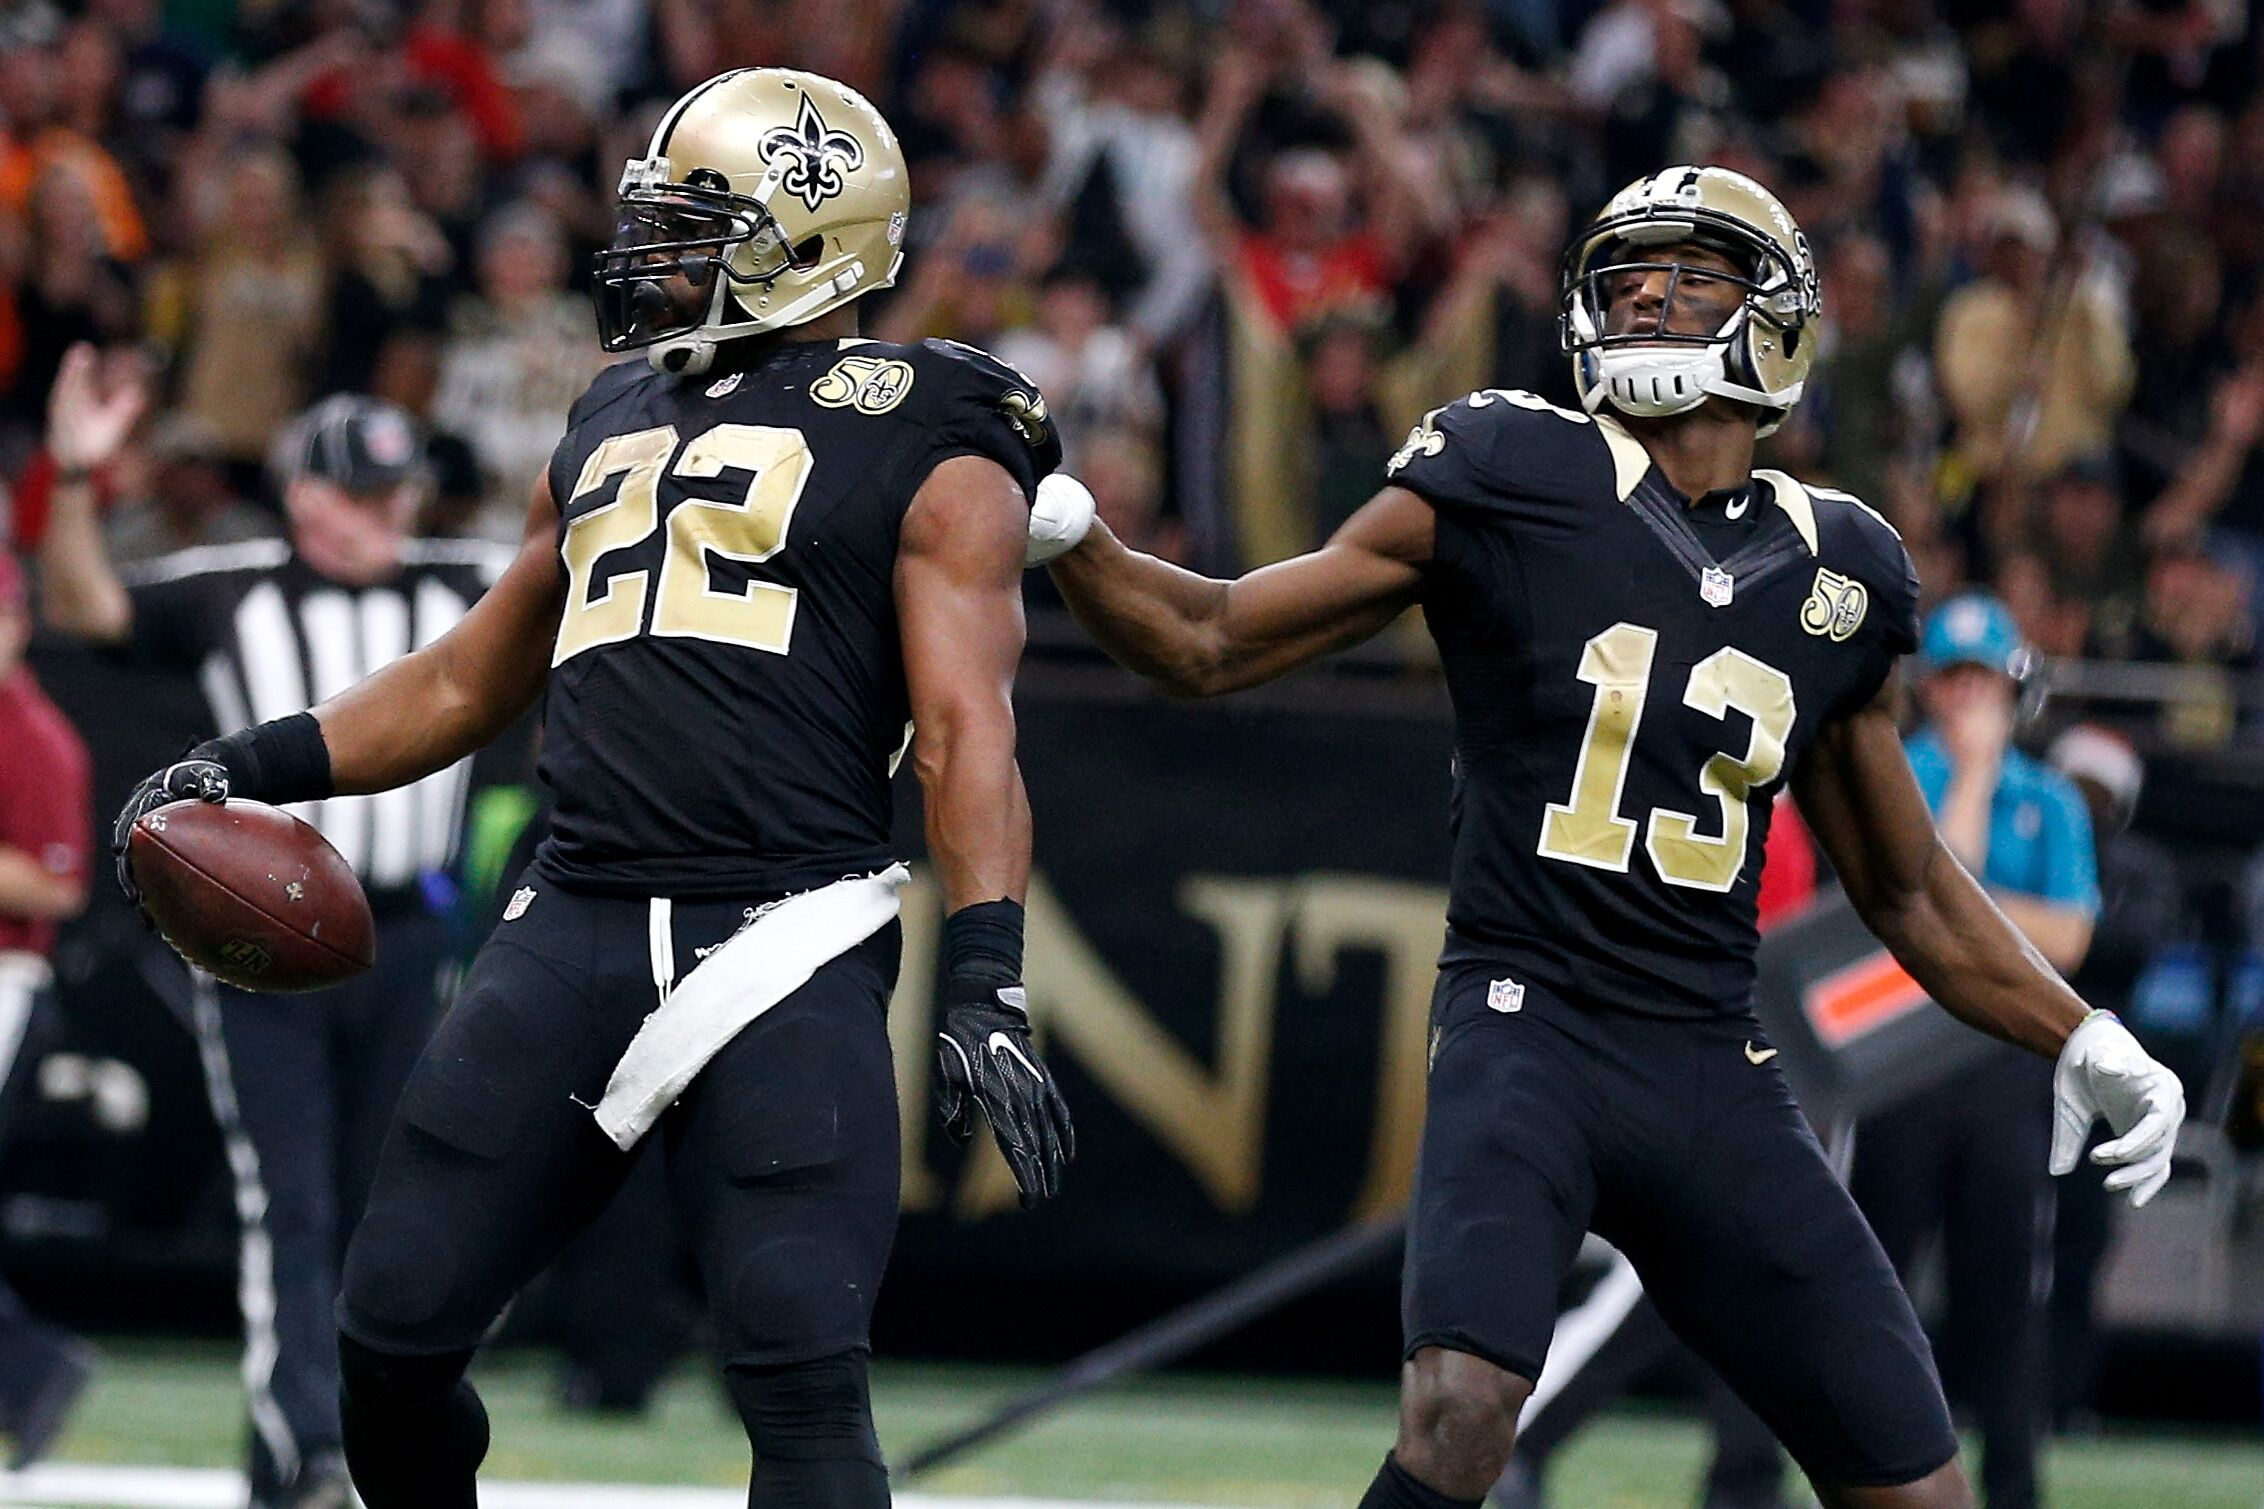 New Orleans Saints' running back by committee approach not working